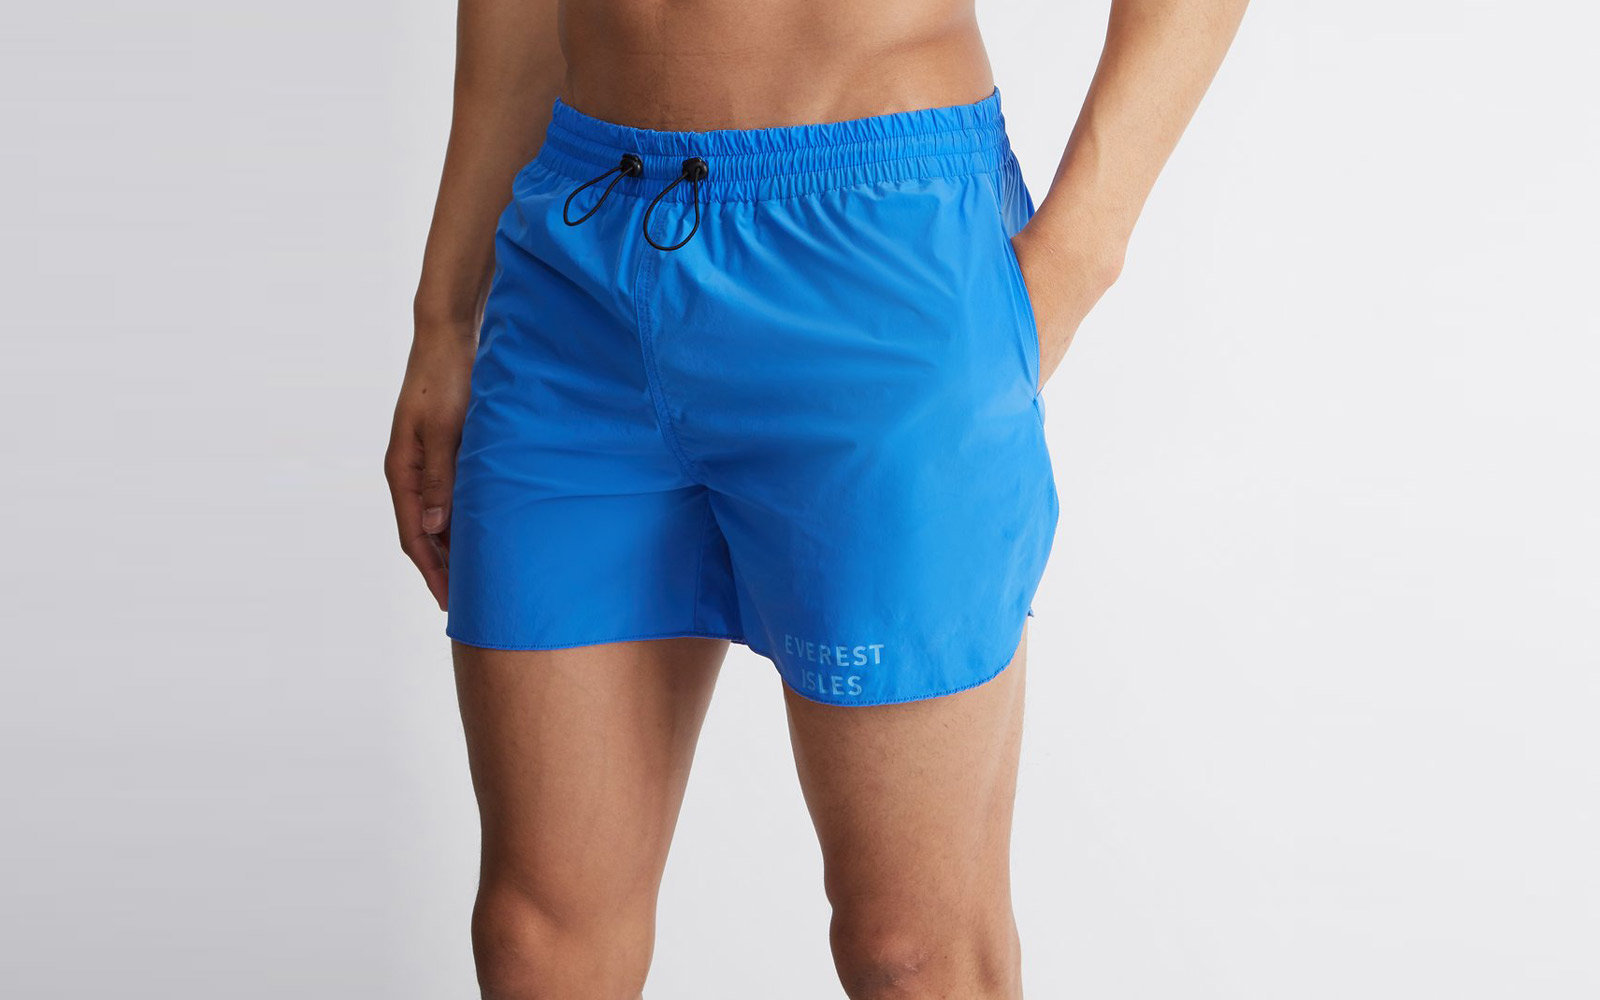 everest isles mens swim trunks